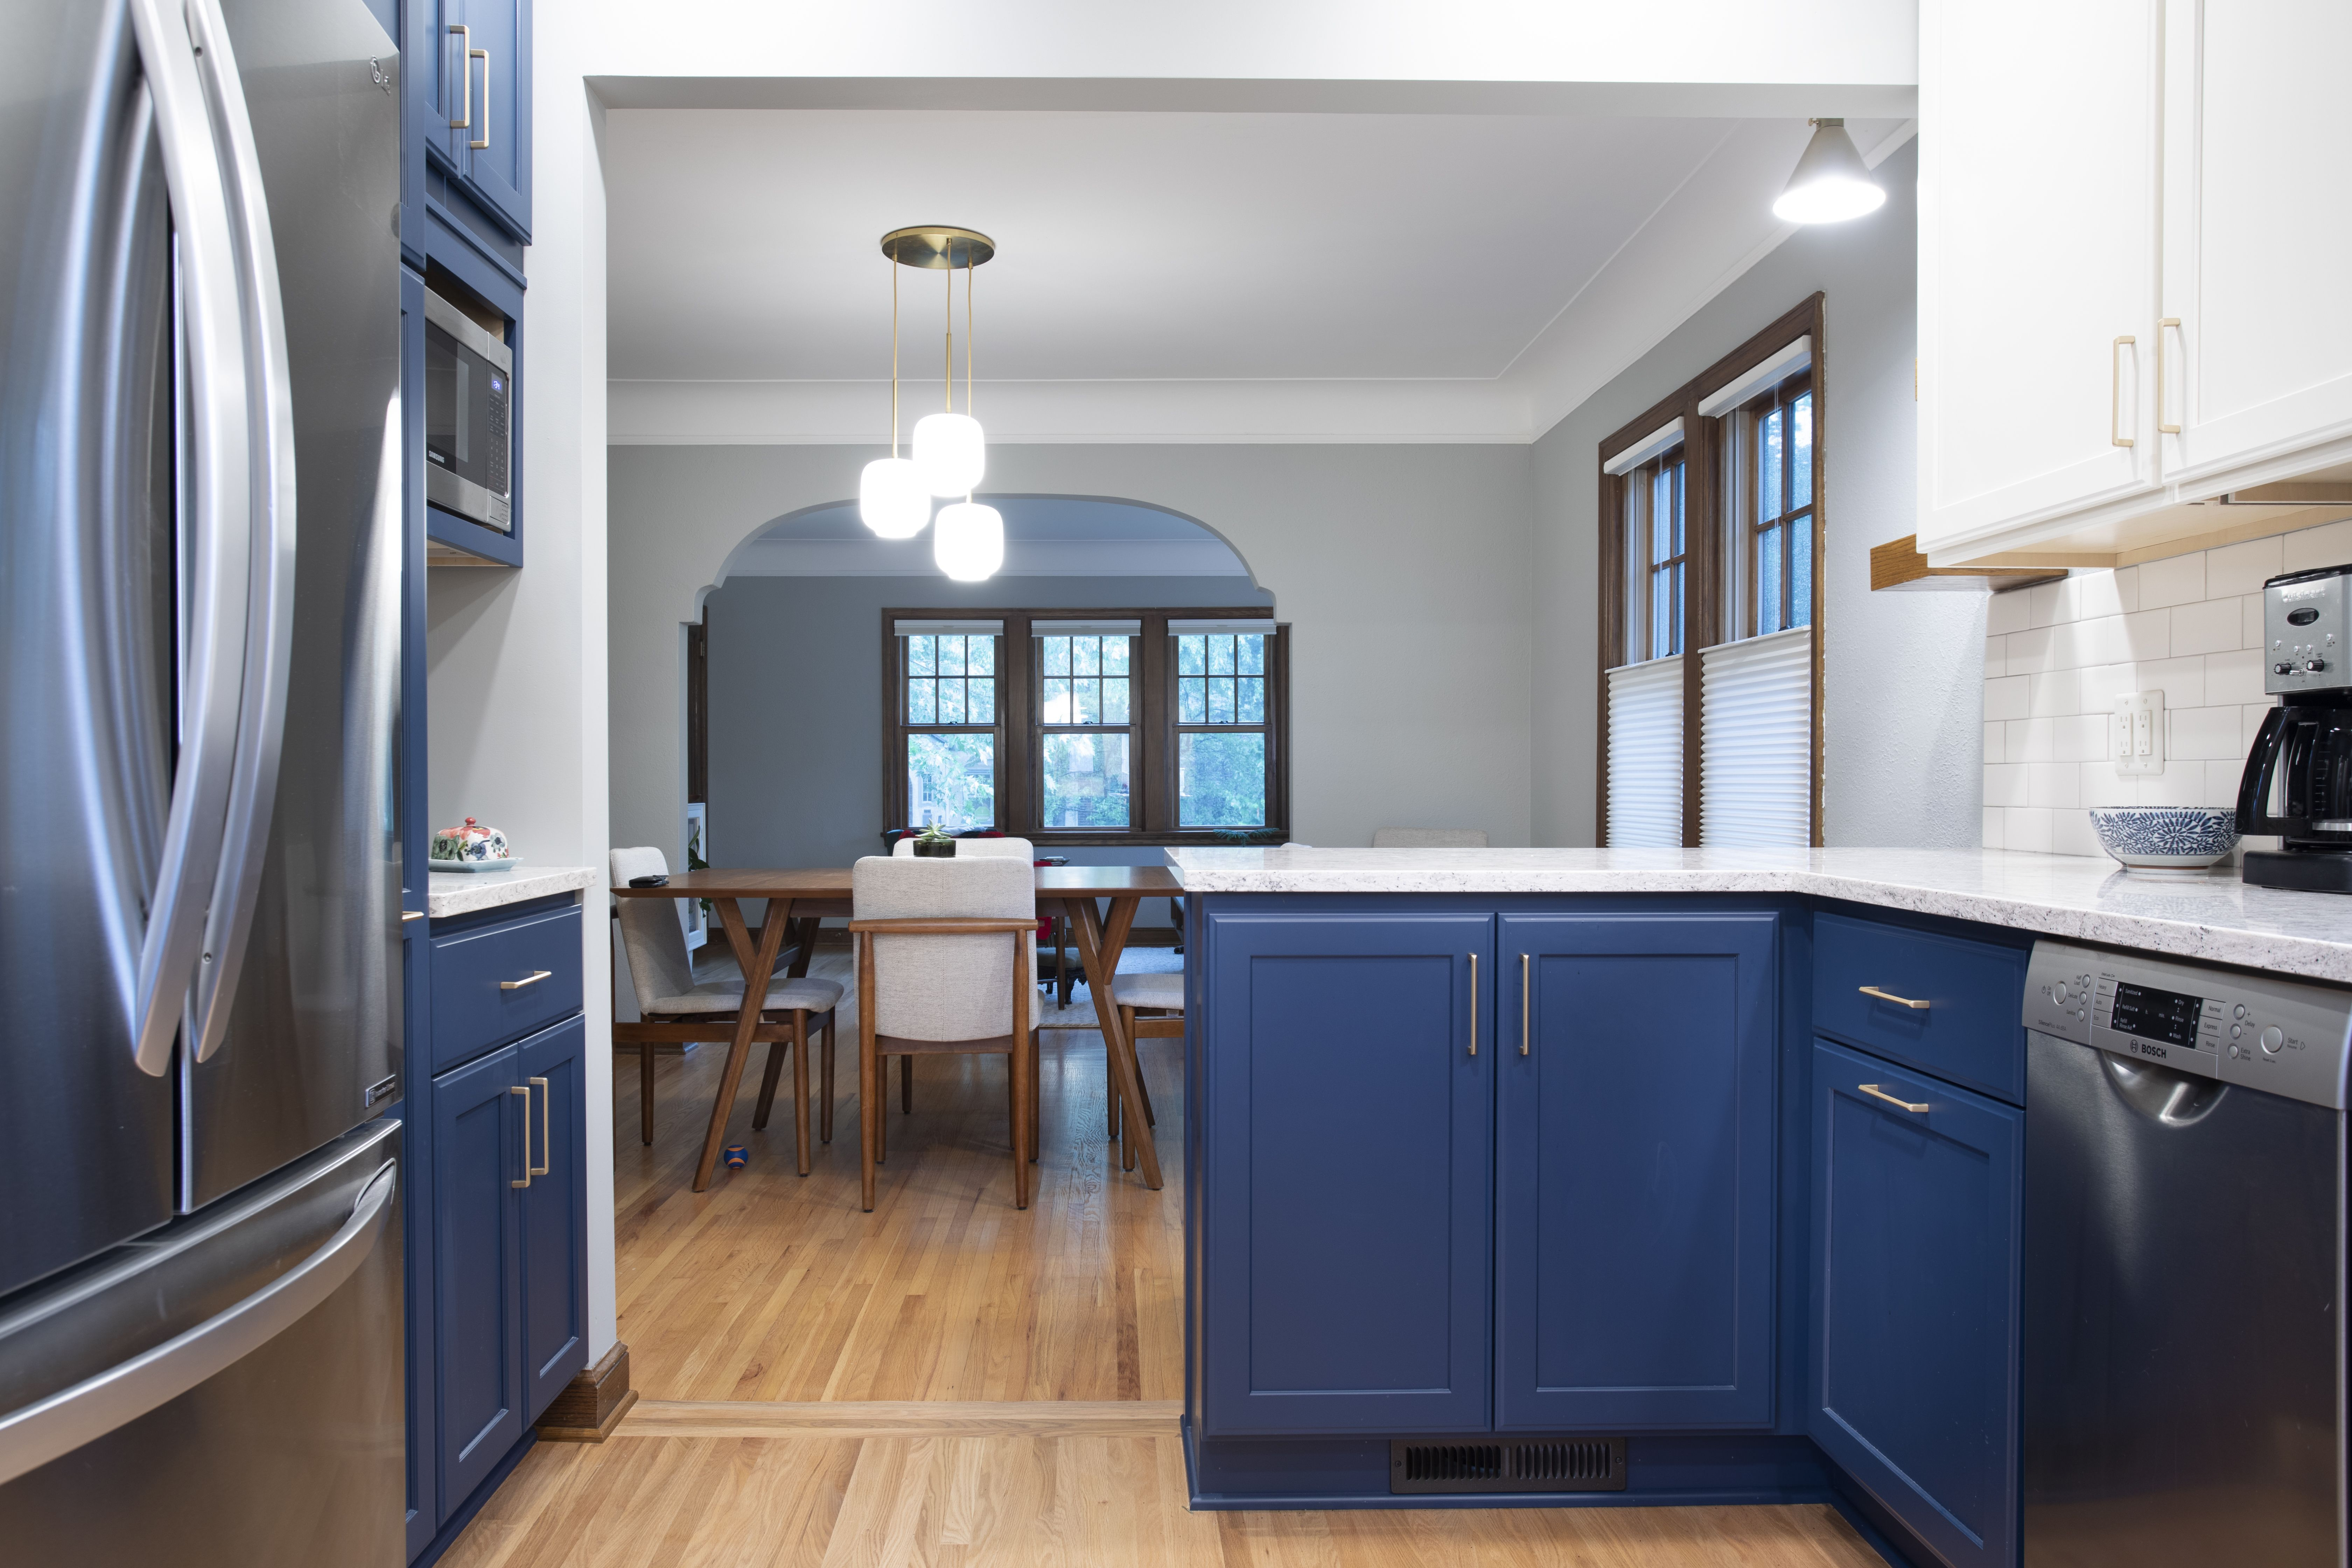 Kitchens Archive - Castle Building & Remodeling, Inc. in ...